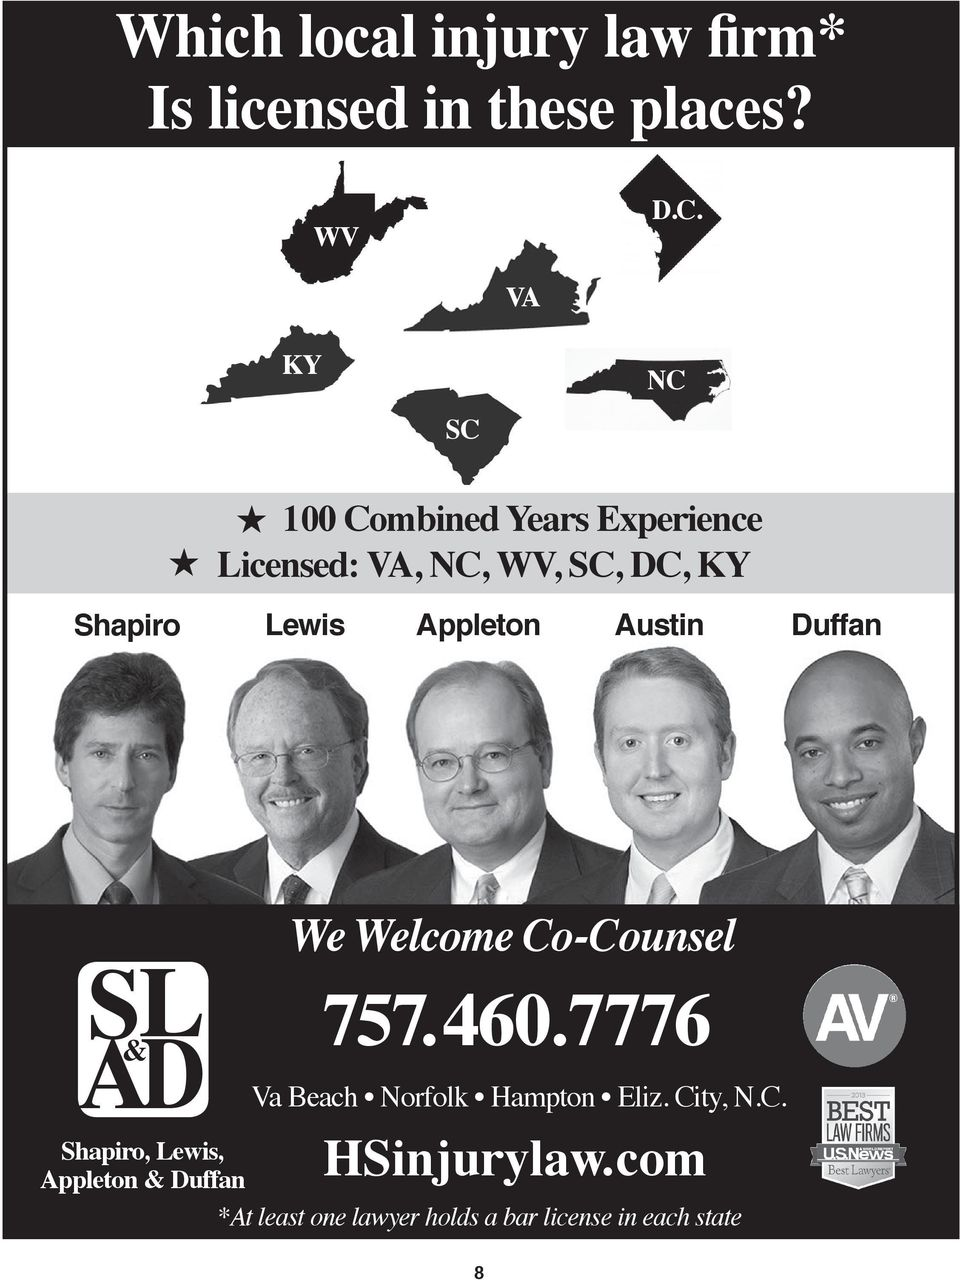 Appleton Austin Duffan SL AD & We Welcome Co-Counsel 757.460.